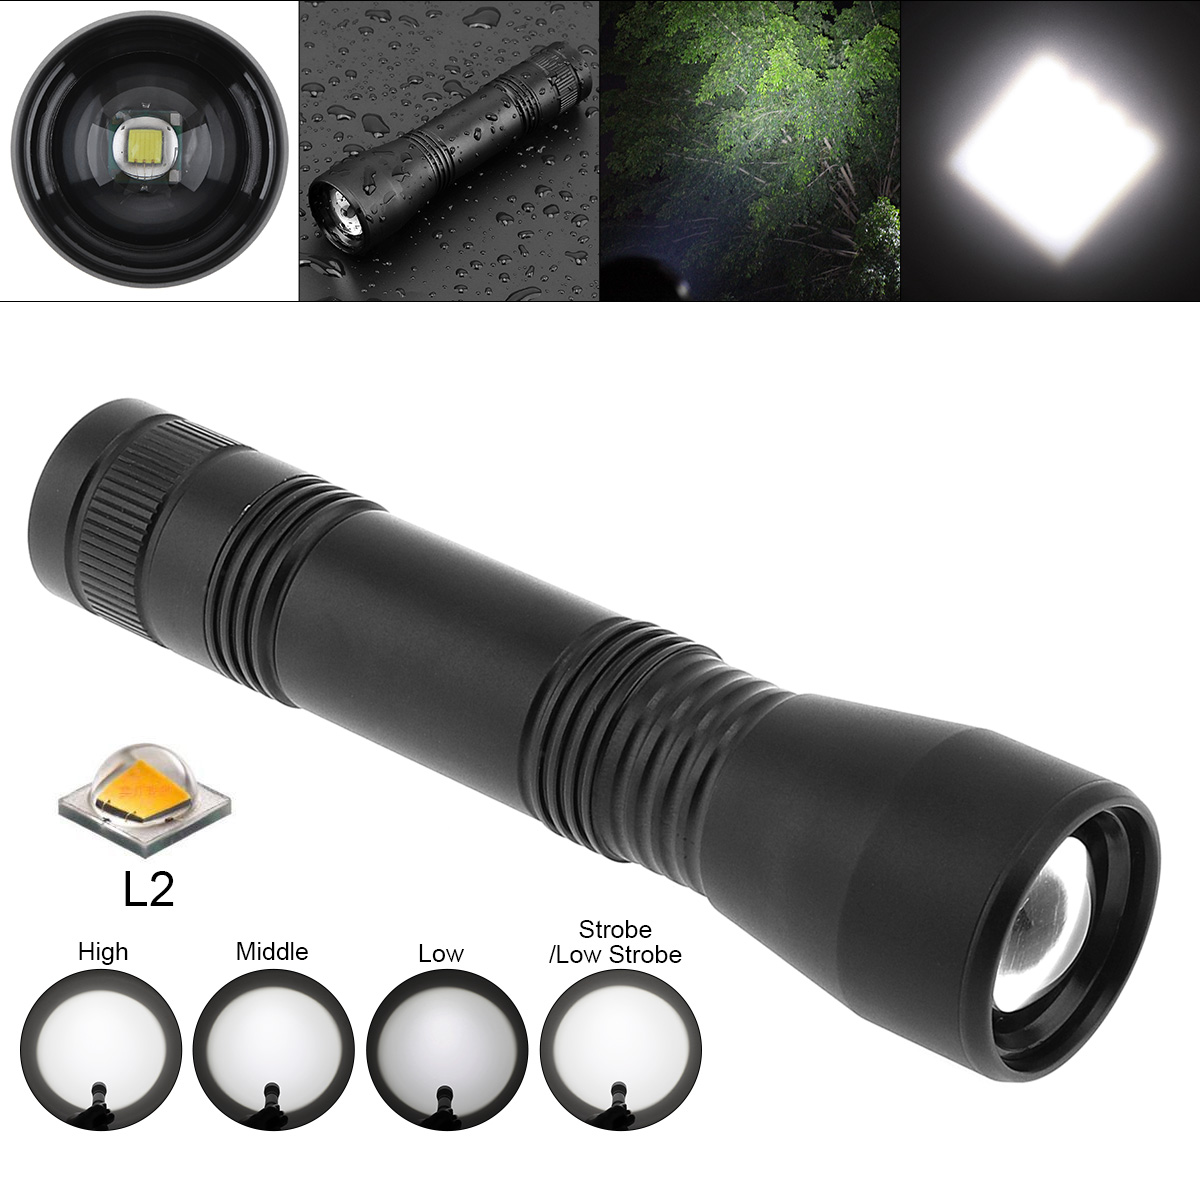 Super Bright XML L2 LED Flashlight Torch Lamp 1600LM Aluminum Alloy Waterproof Zoomable Flash Light for Camping Outdoor Fishing super bright c8 led xml l2 flashlight 5000lm tactical flash light aluminum torch camping lamp light outdoor lighting